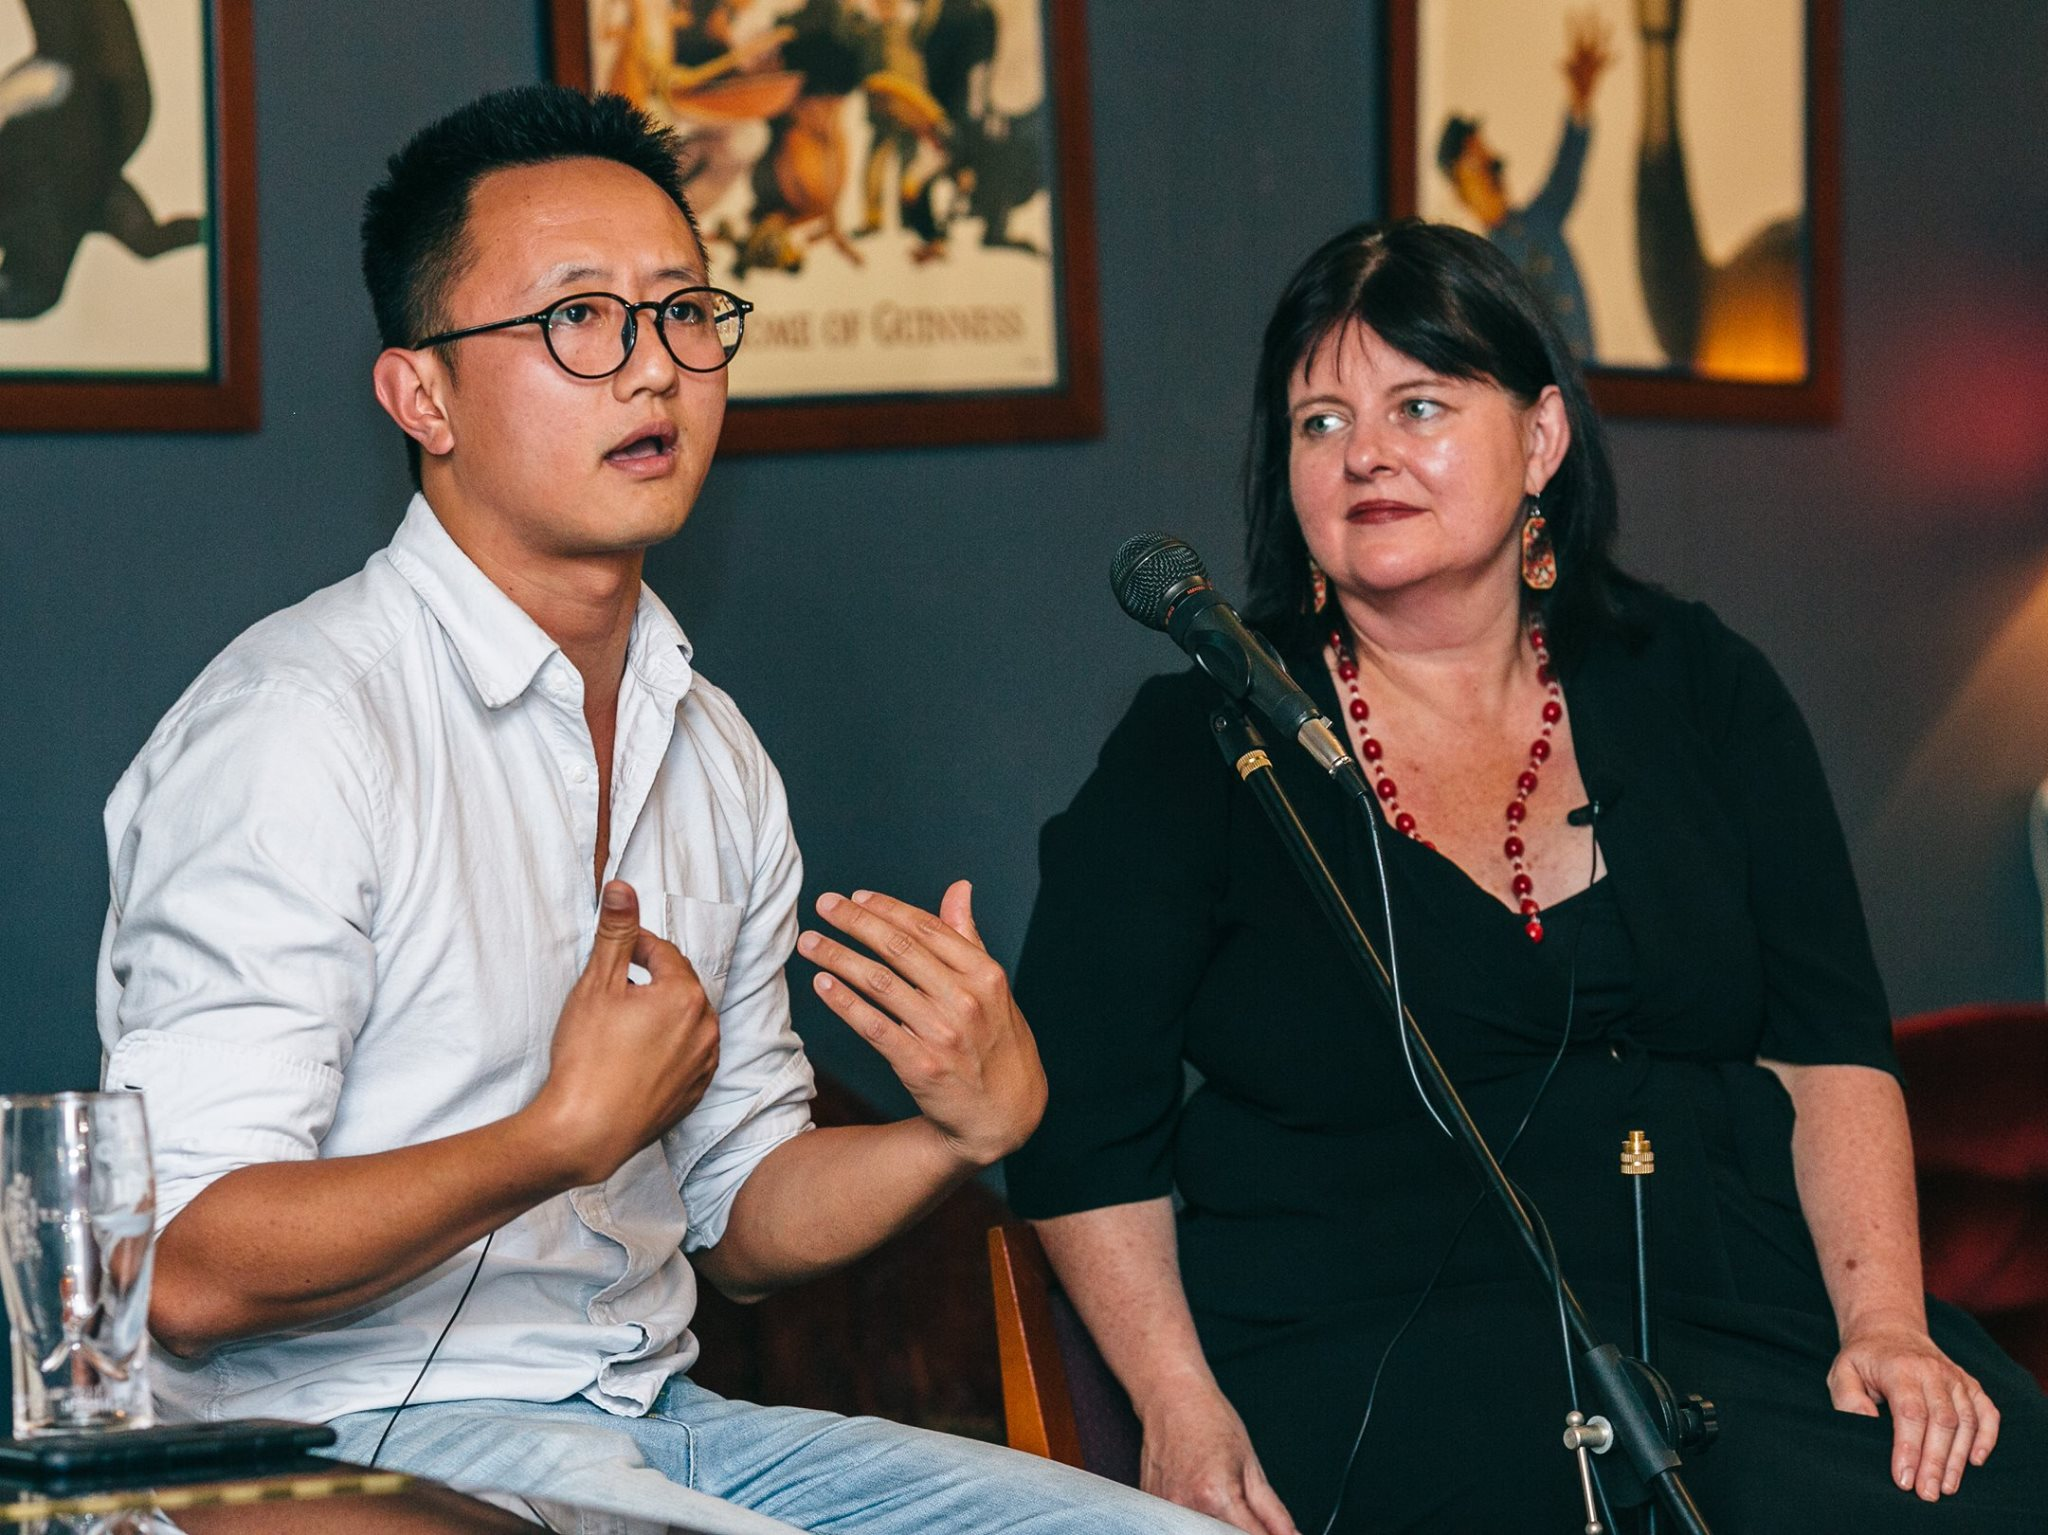 In action, Funding and Finance Panel; Rick Chen, co-founder of Pozible, with Lisa Cahill, Director of Australian Design Centre.